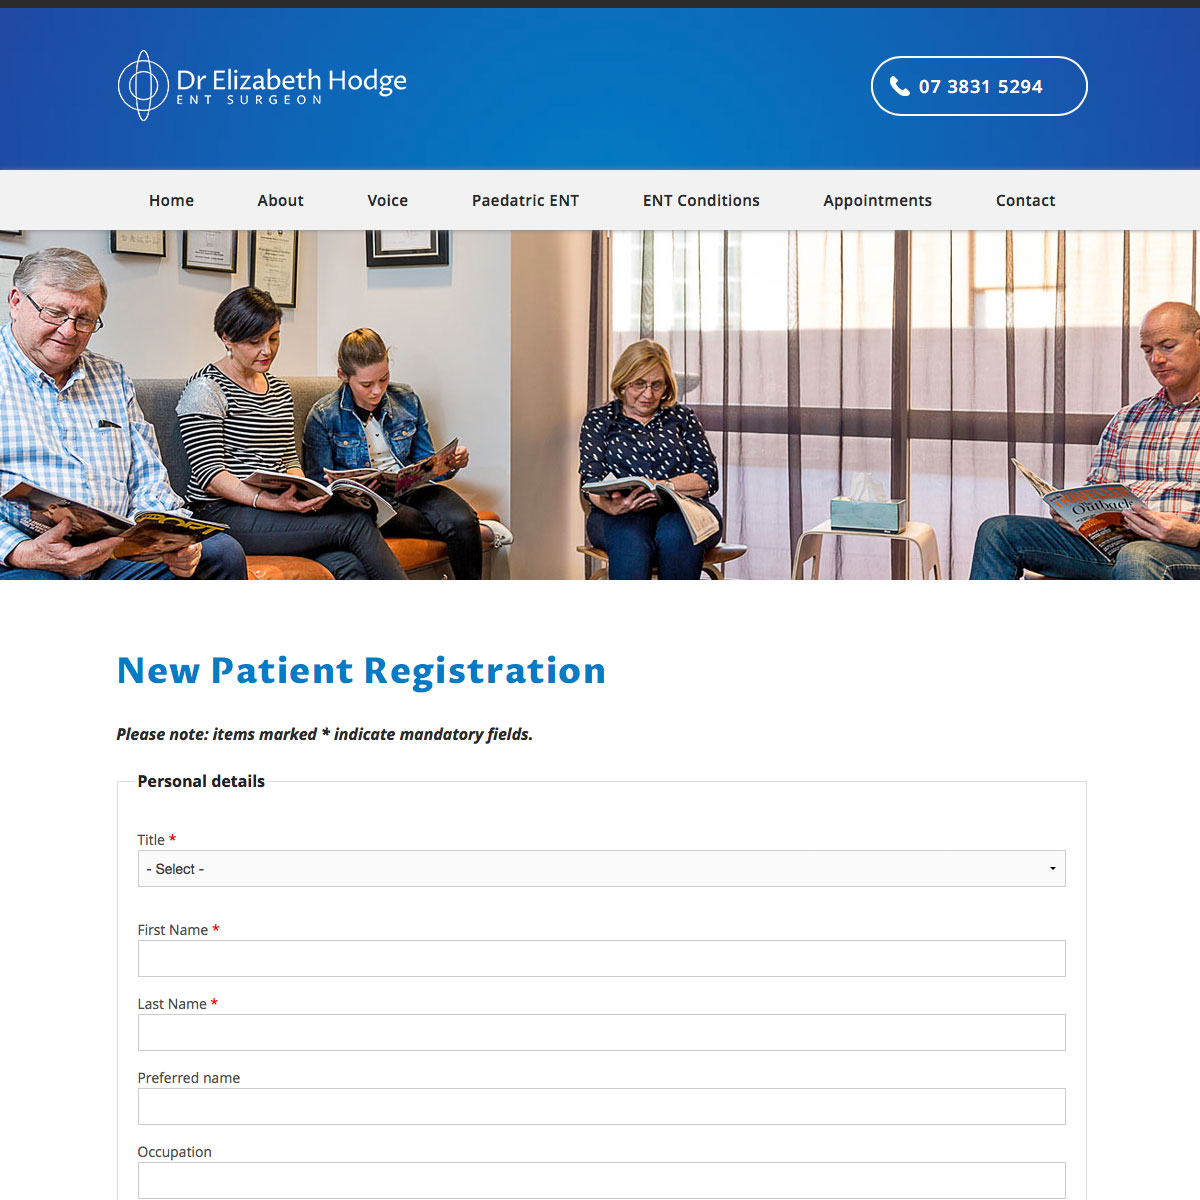 Dr Elizabeth Hodge - Patient Registration Form